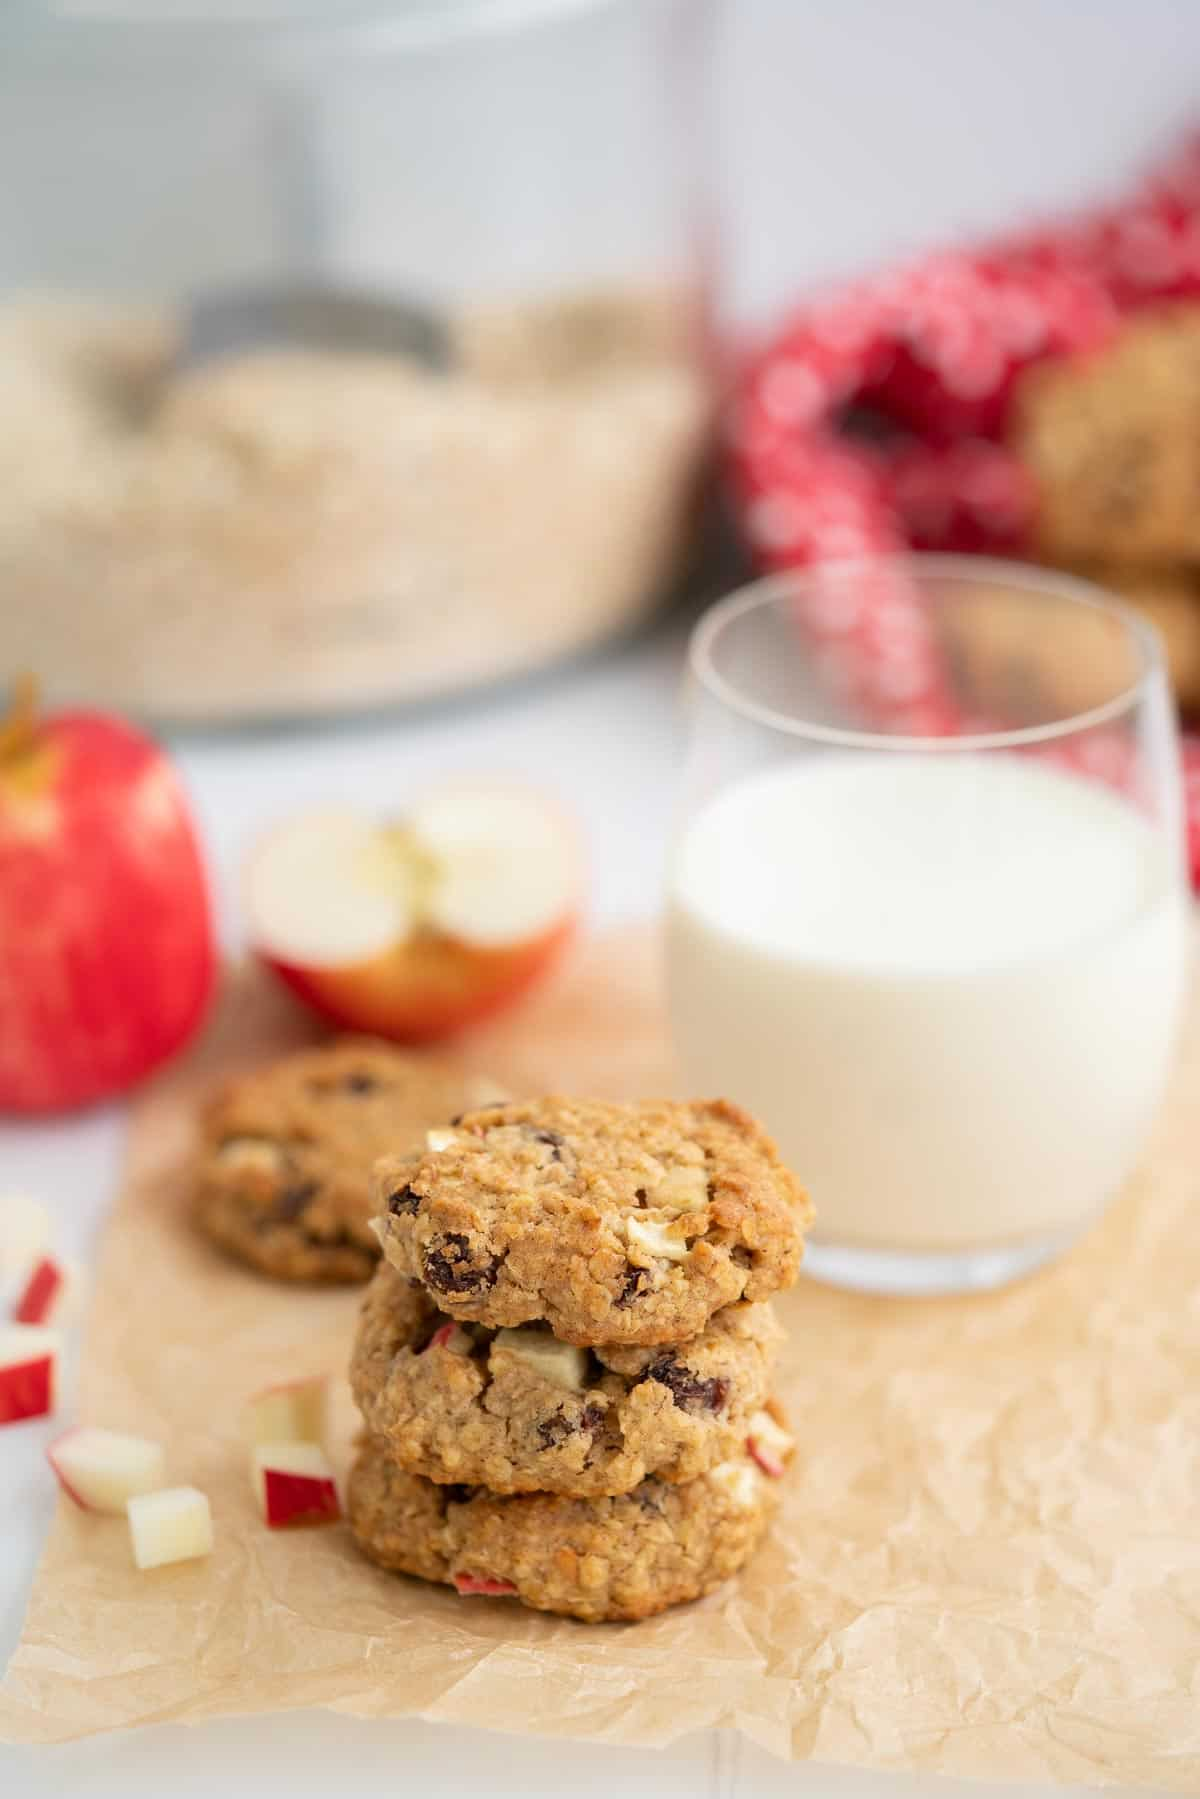 A stack of three oat meal cookies sitting on crinkled parchment paper with a glass of milk, apples and a jar of rolled oats in the background.